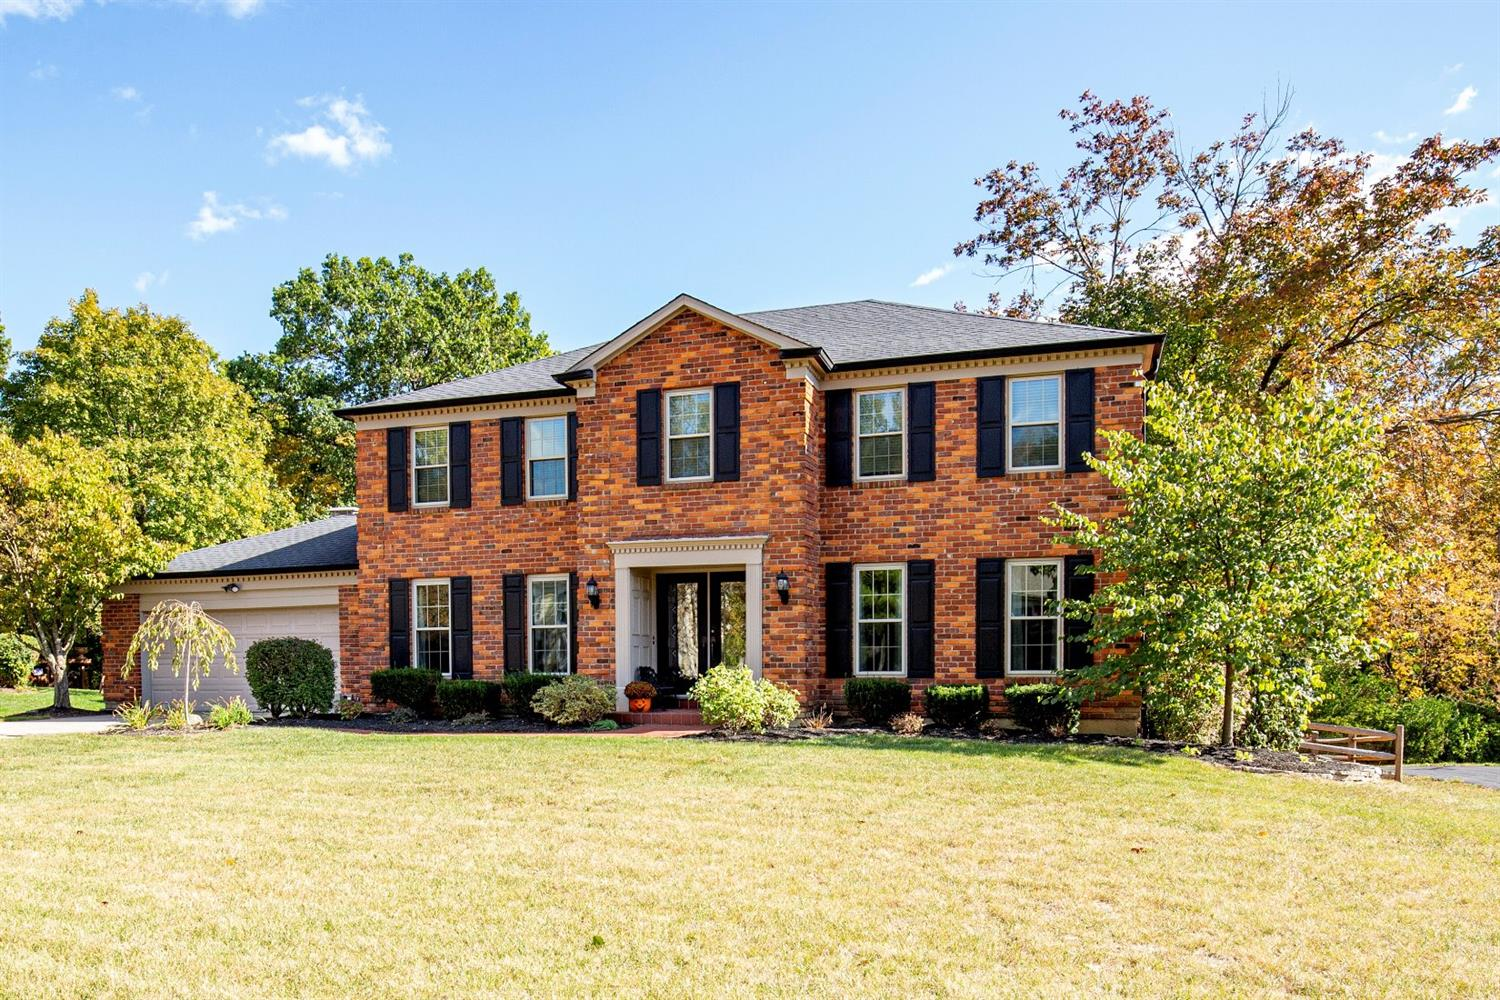 7131 Willowood Dr West Chester - East, OH